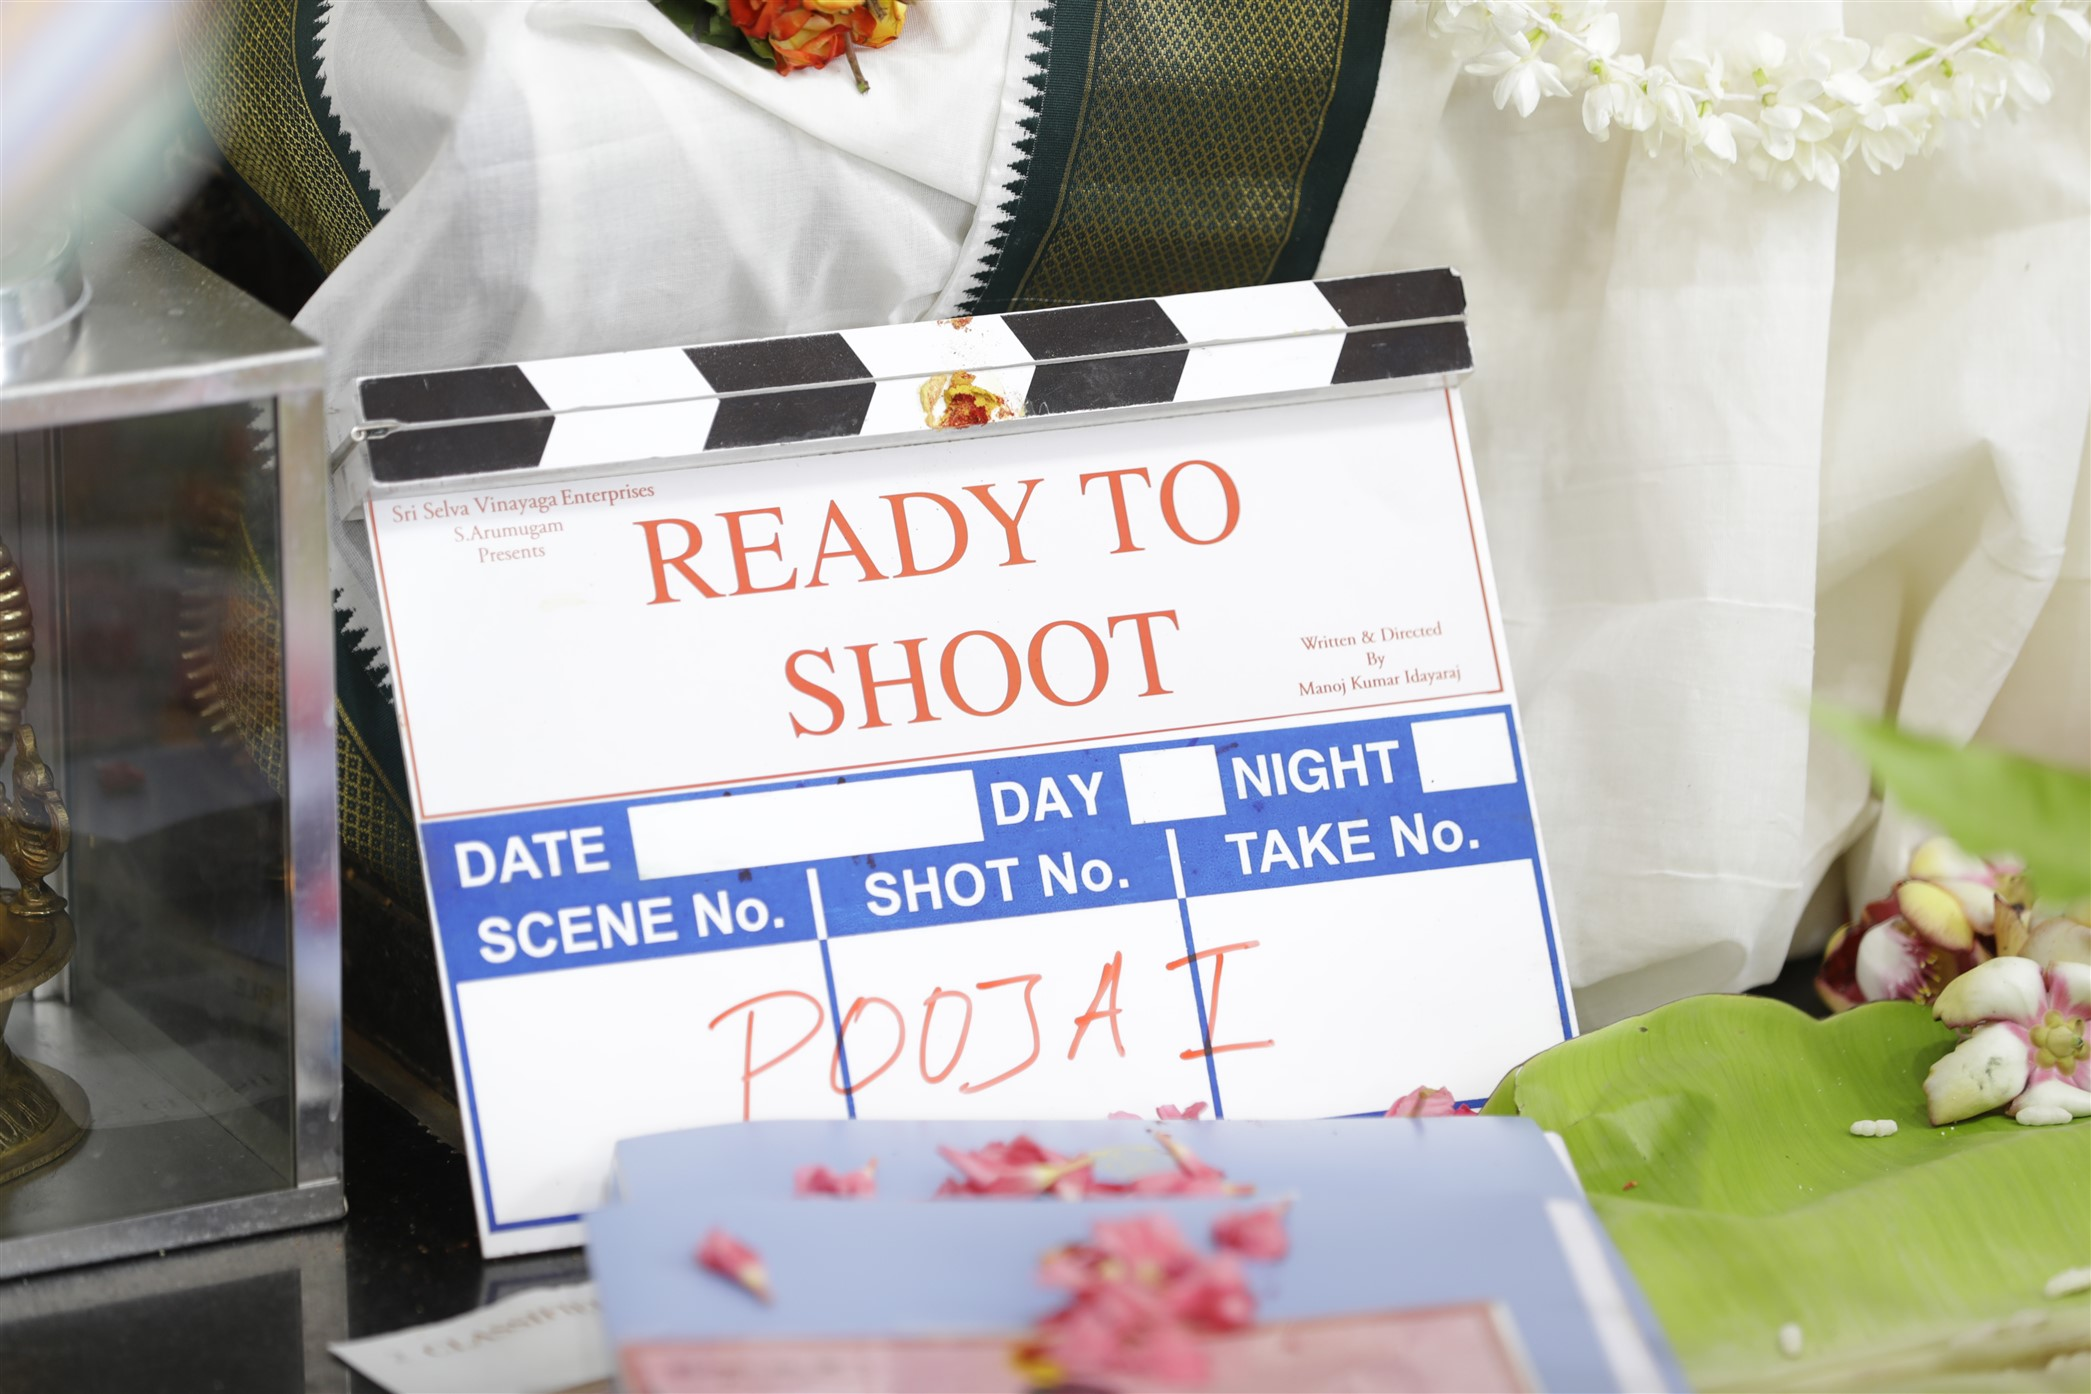 Ready To Shoot Tamil Movie Review